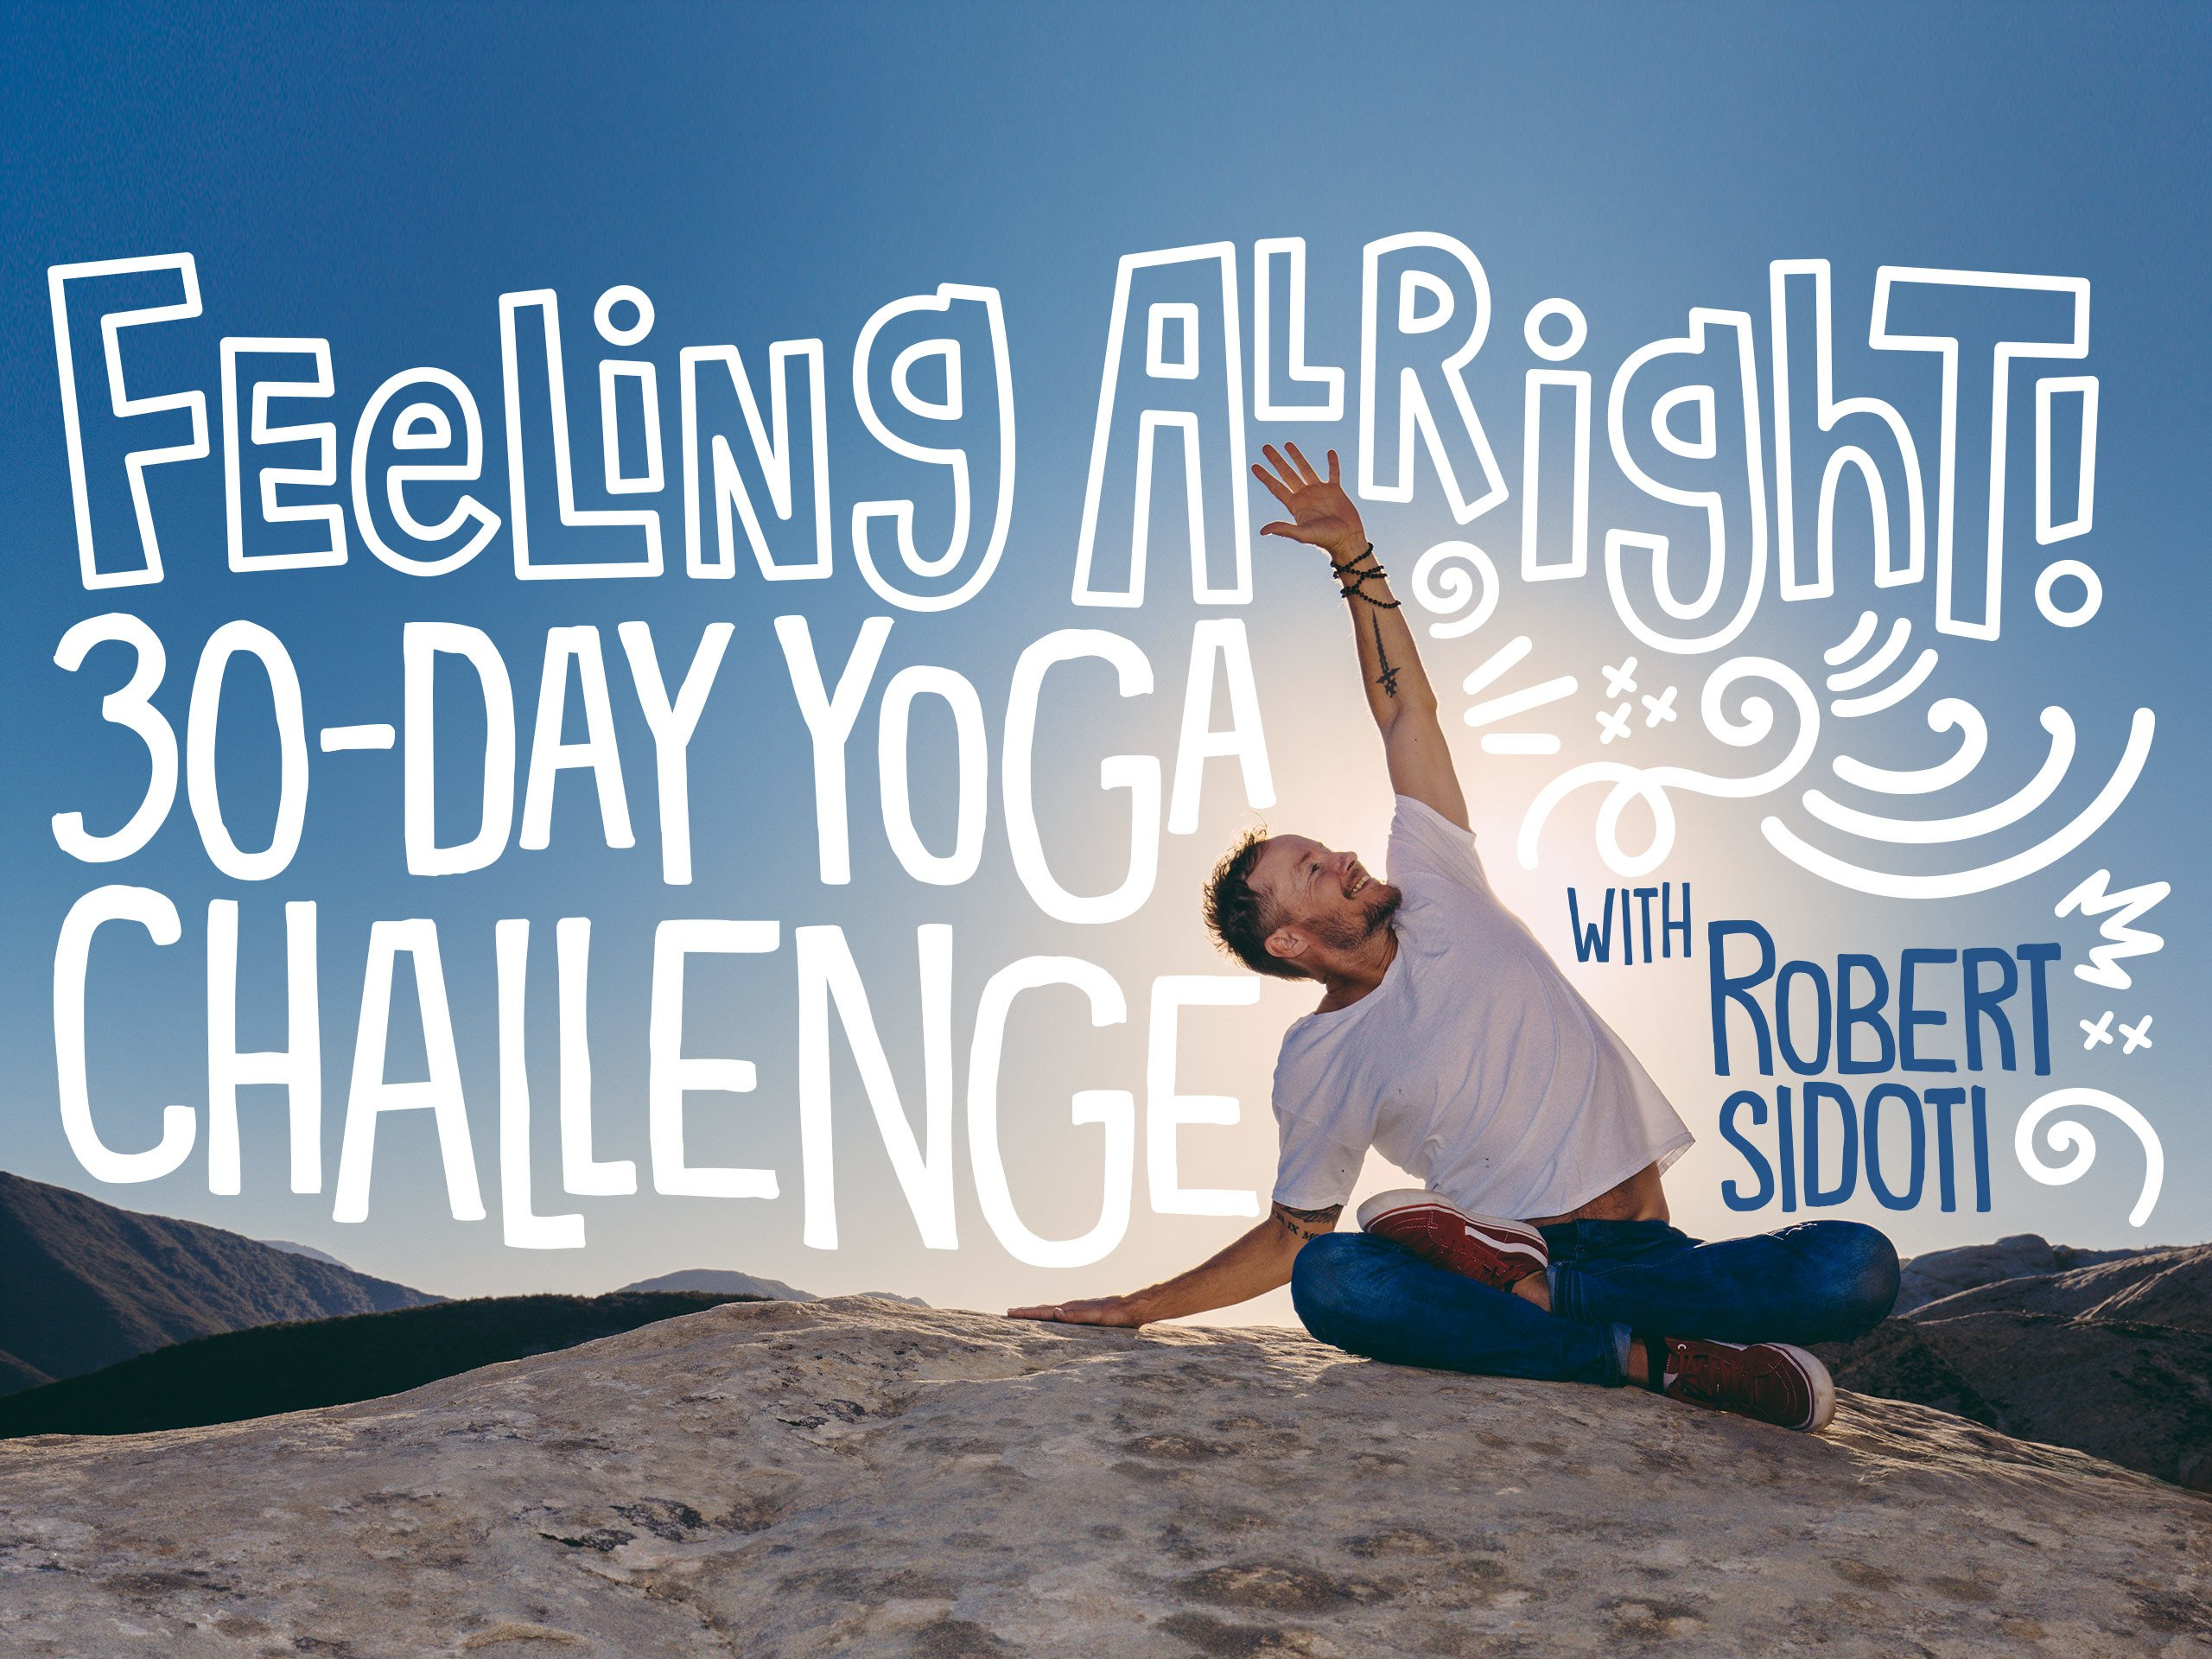 Amazon.com: Feeling Alright: 30-Day Yoga Challenge - Season 1